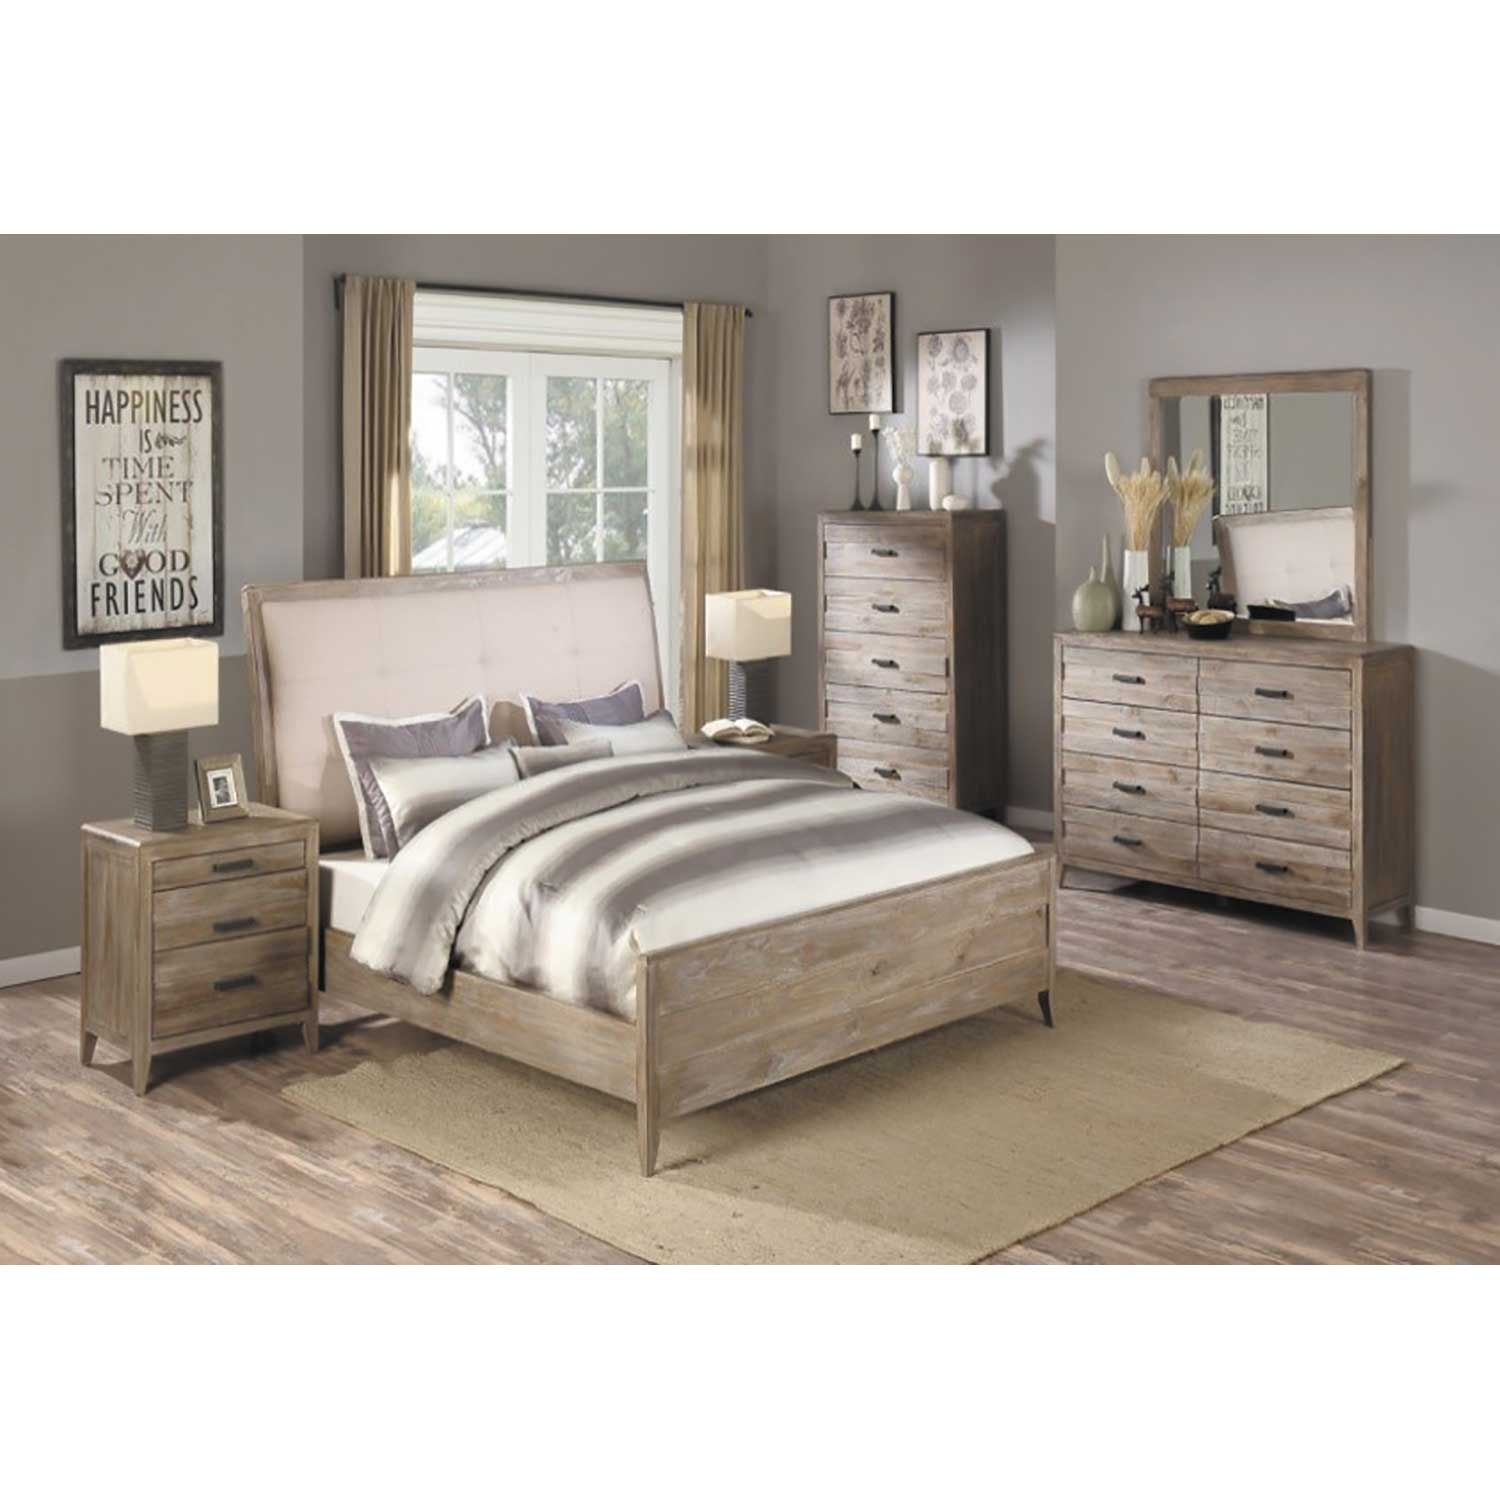 torino 5 piece bedroom set b323 qbed04012505 emerald home furnishings afw. Black Bedroom Furniture Sets. Home Design Ideas